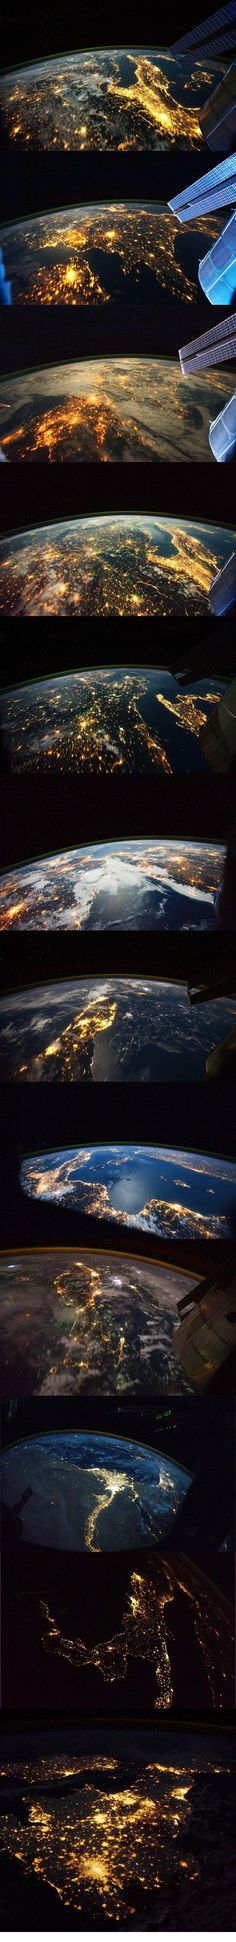 Earth at night.....pretty